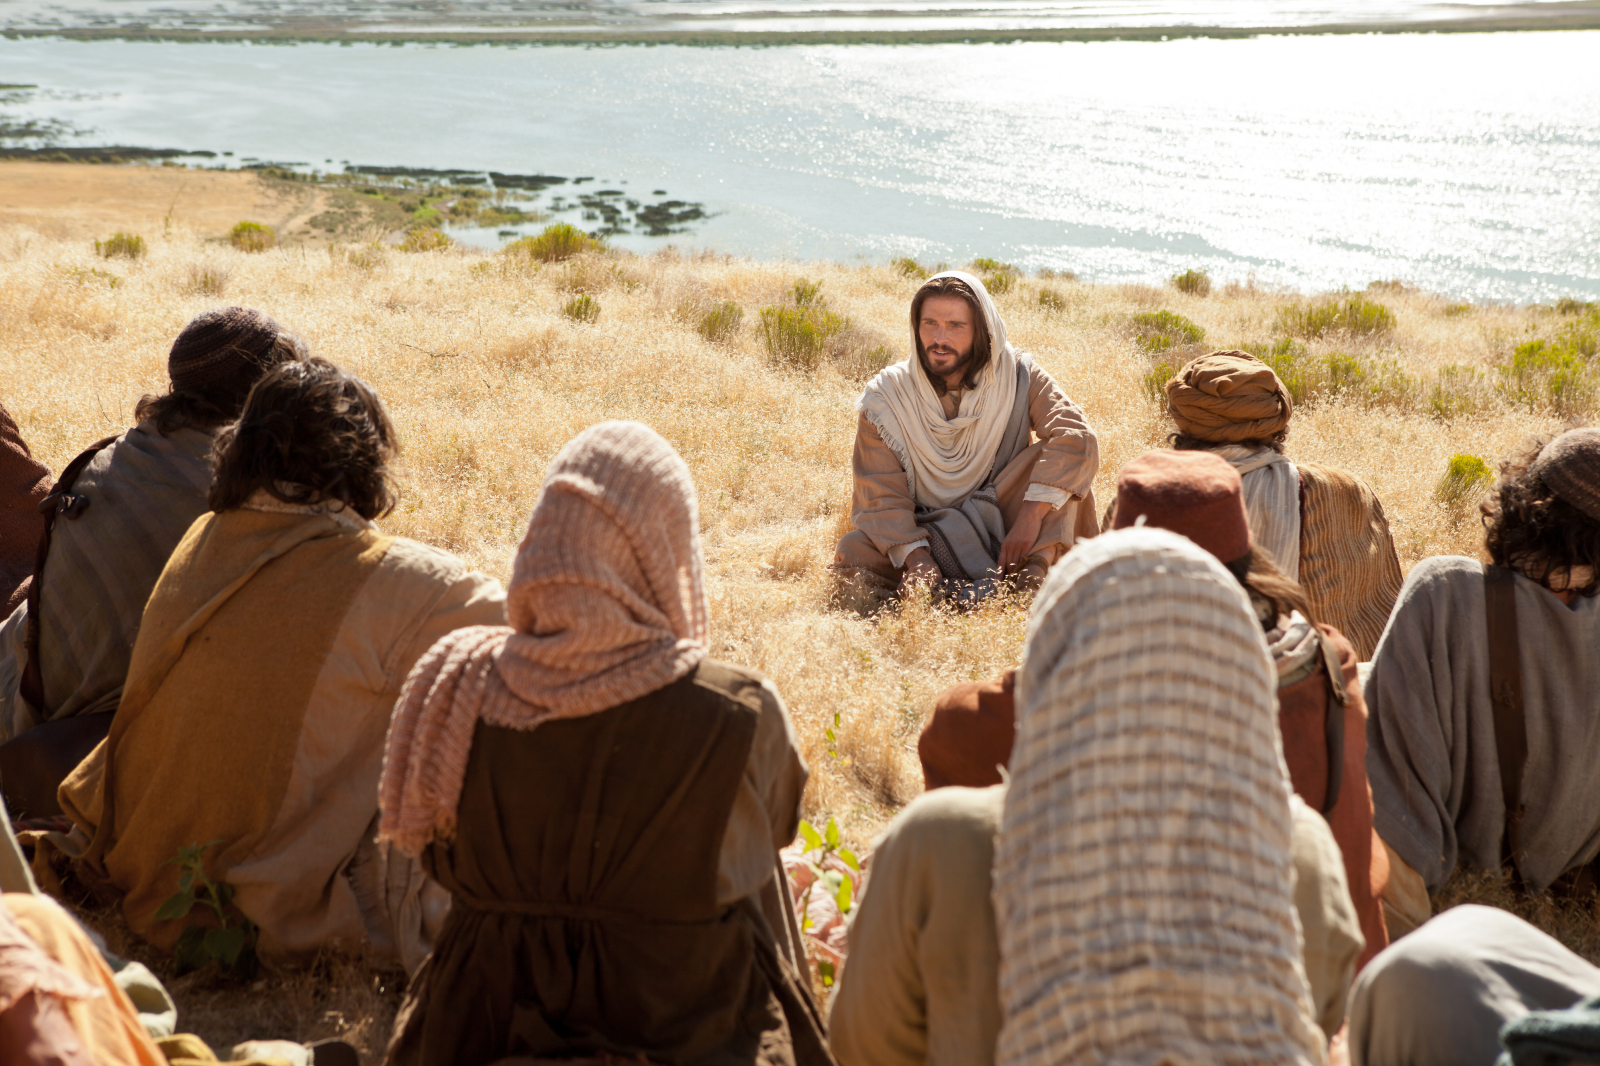 A scene from the Church's Bible videos depicts the Savior preaching His Sermon on the Mount to a group of people. On March 5, 2019, the First Presidency announced changes to the names of LDS.org, Mormon.org and other Church communication channels.